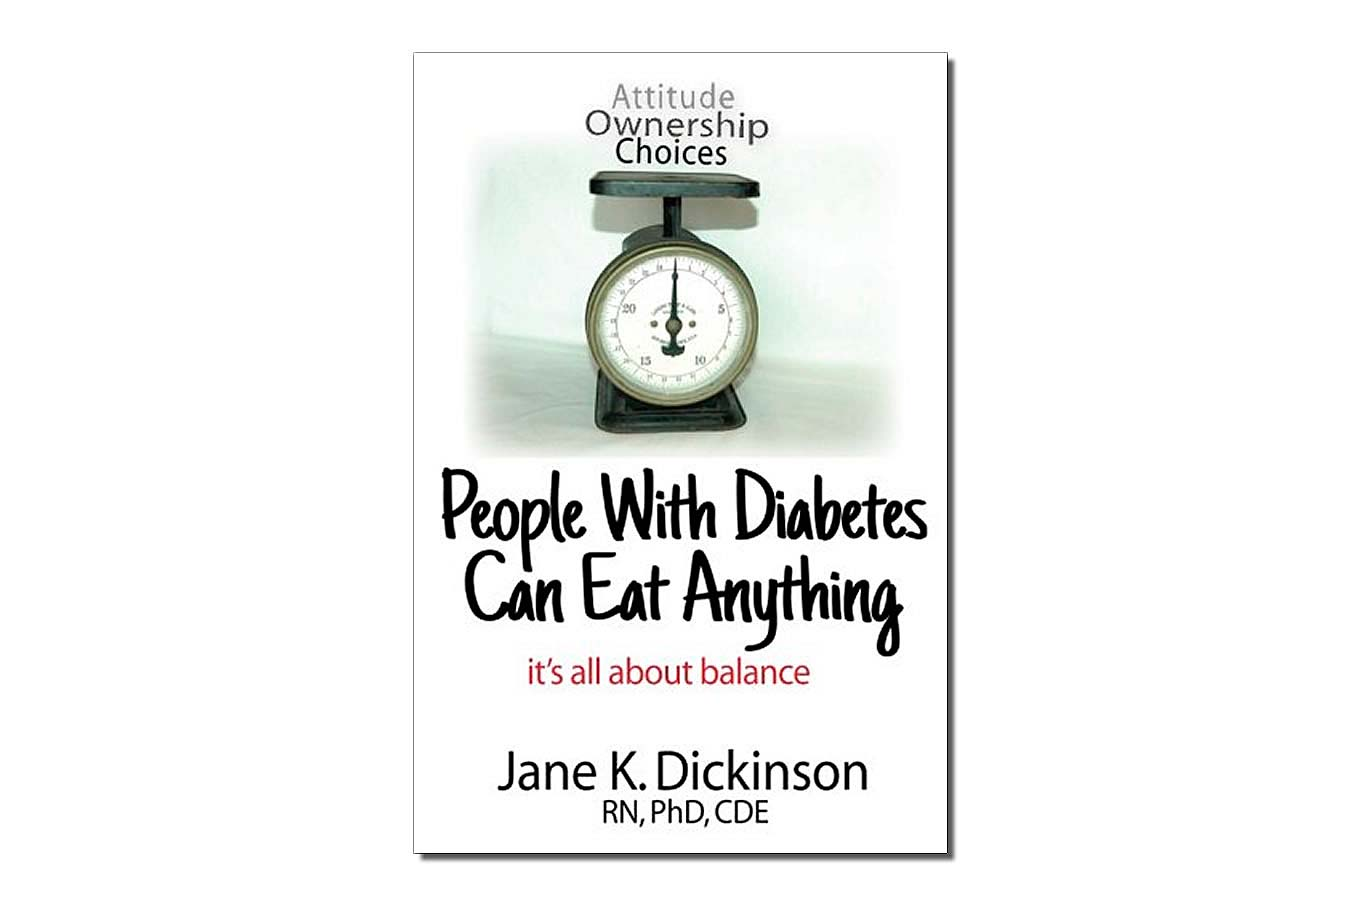 Why Write One More Book About Diabetes?